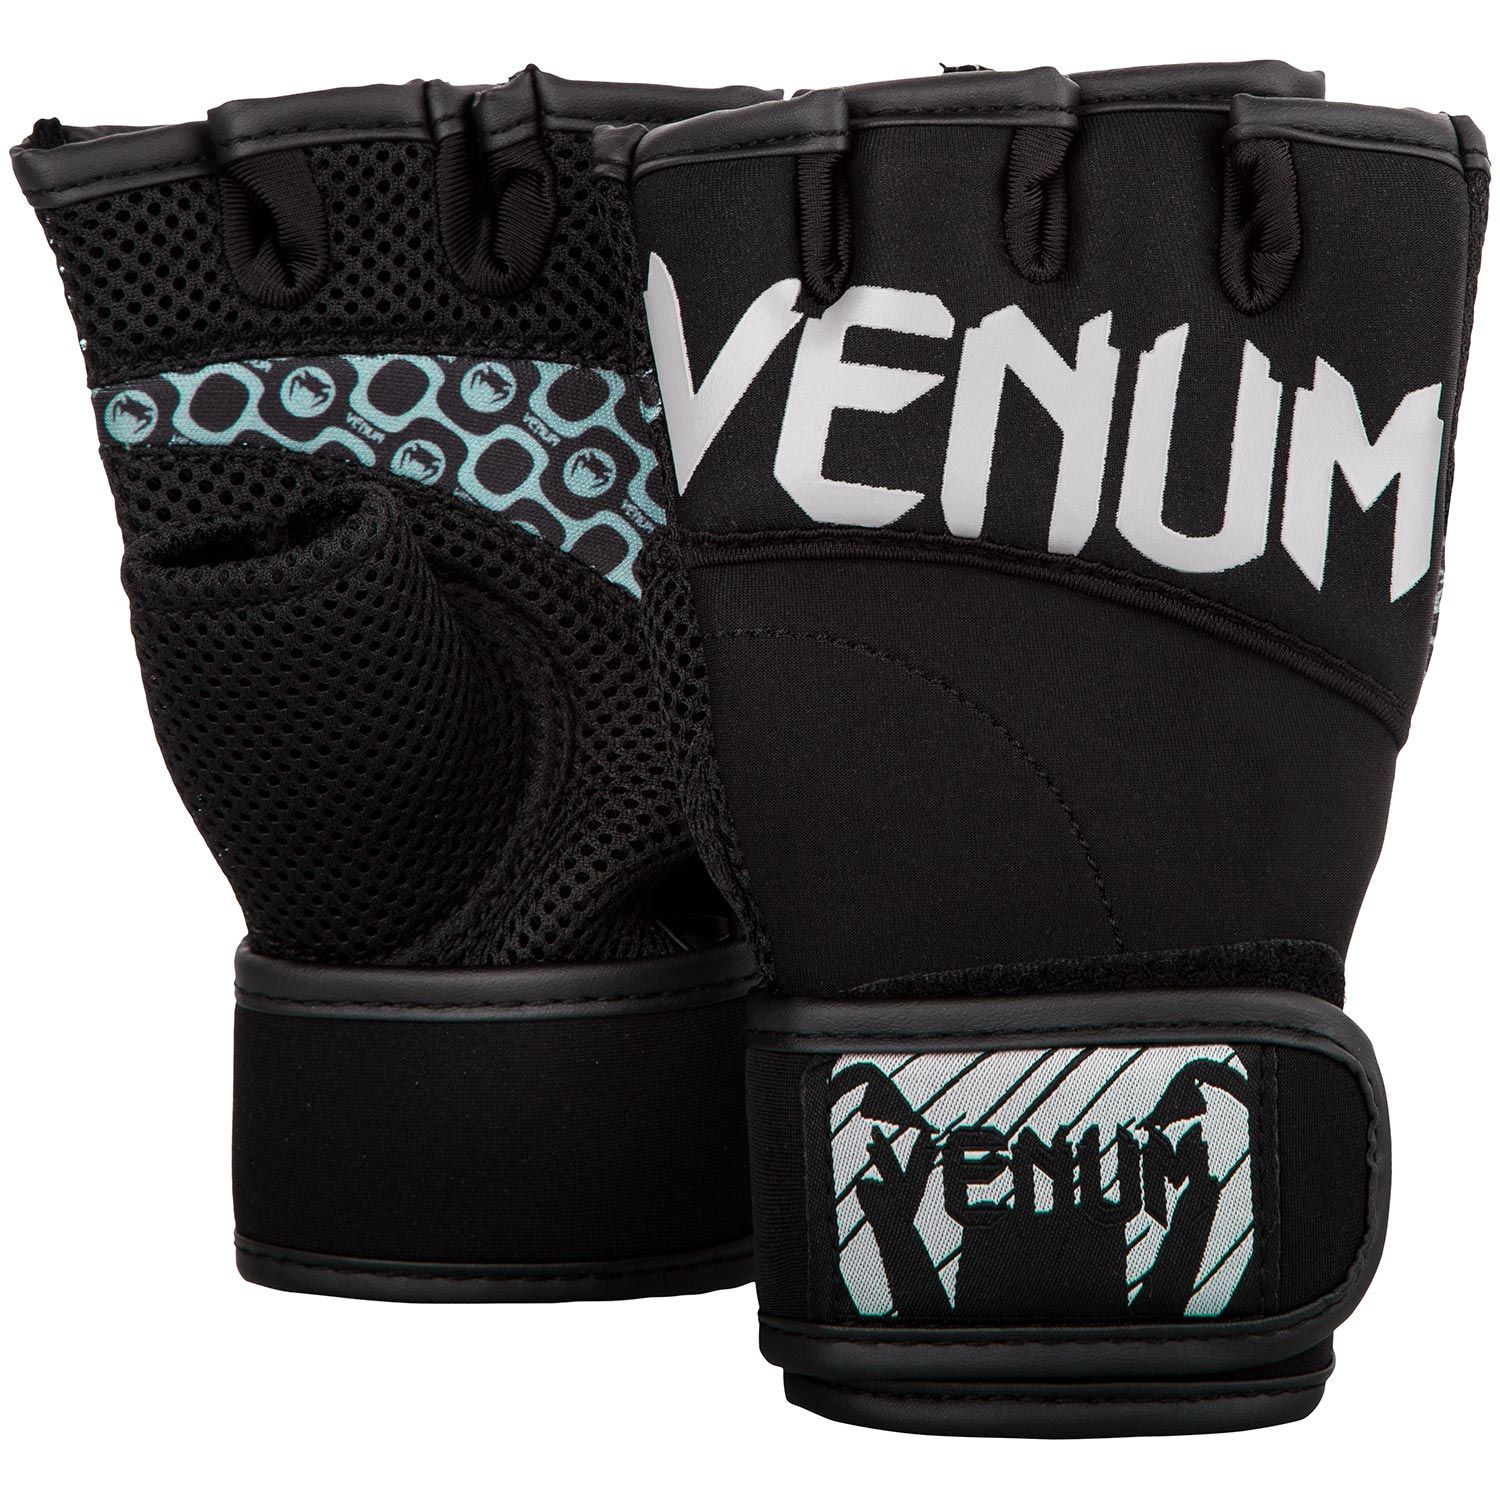 Venum Aero Body Fitness Gloves